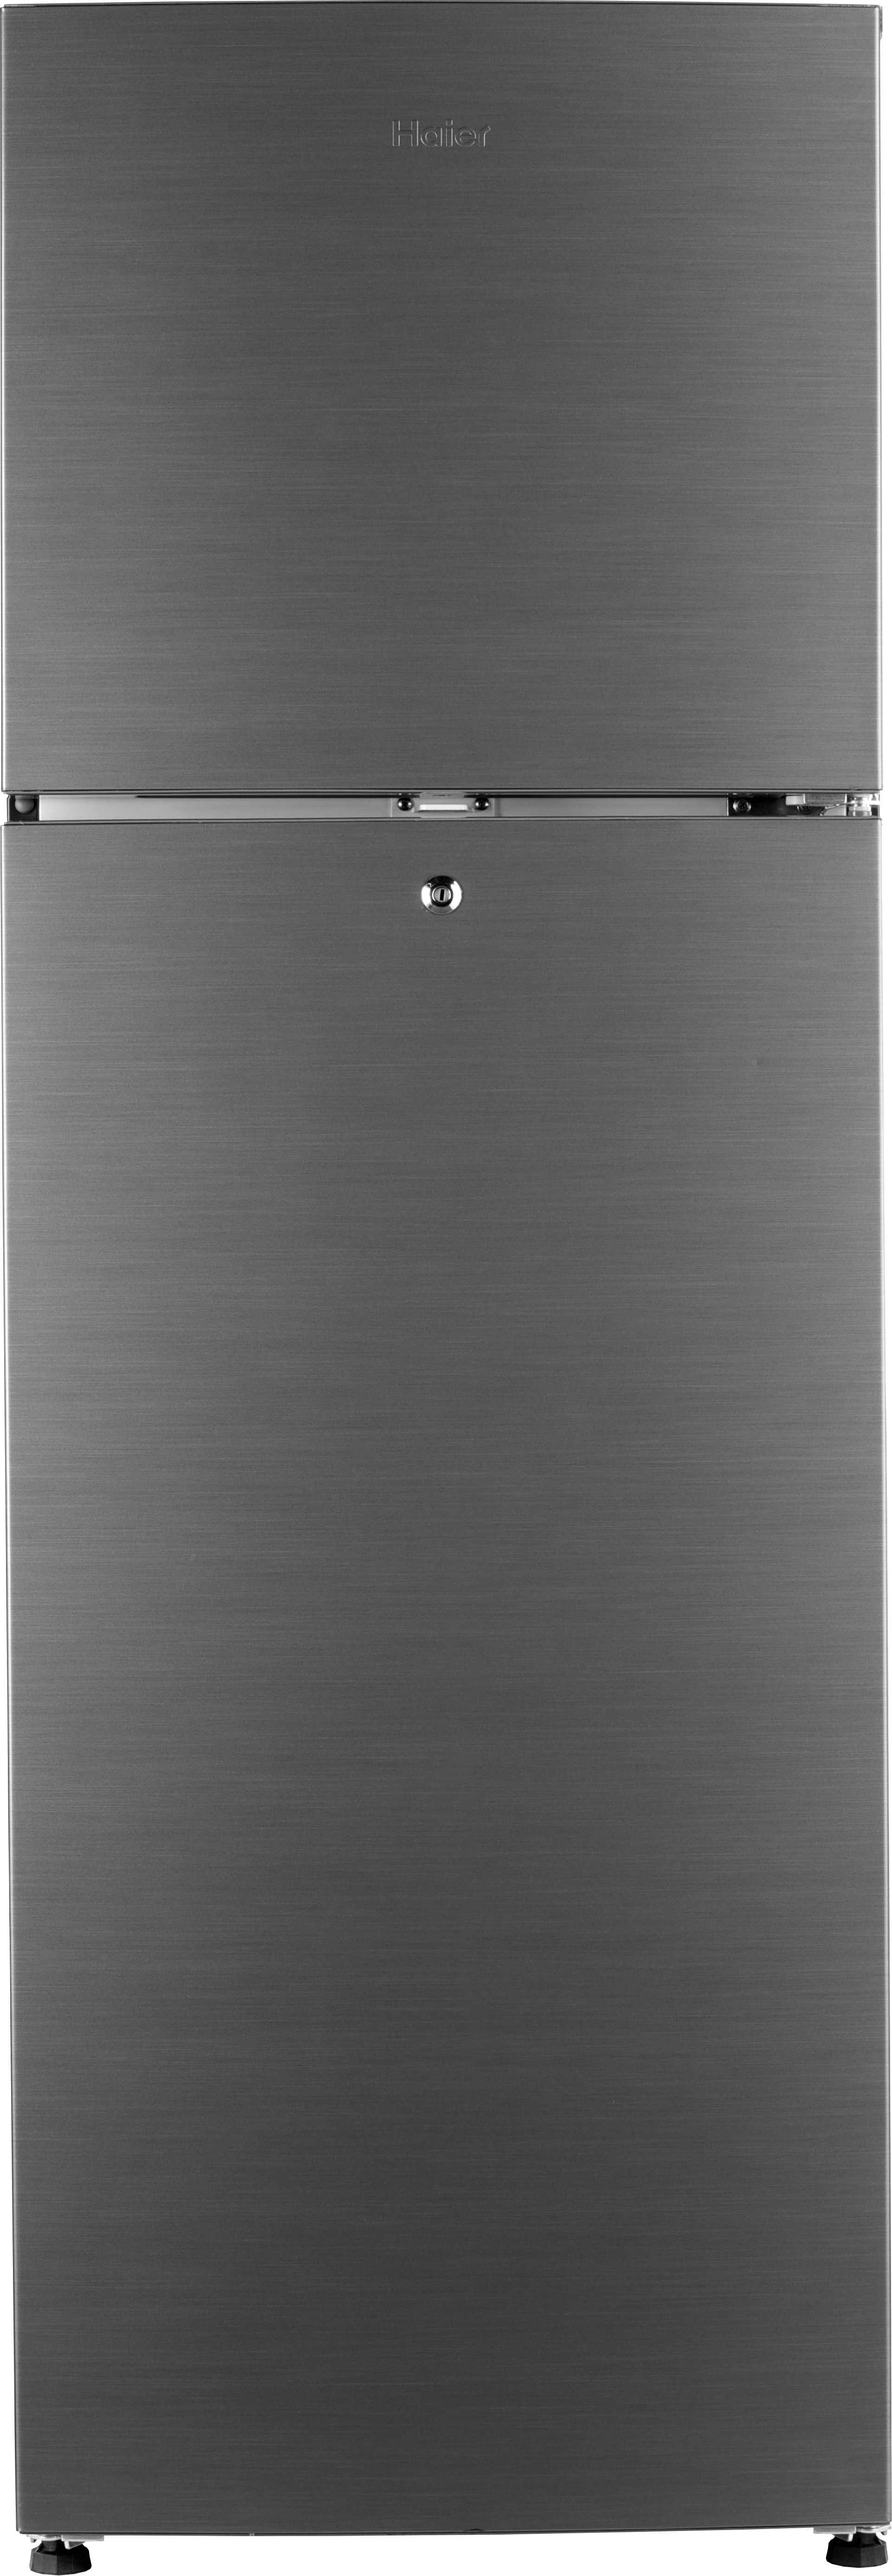 asasasa door side refrigerator double hitachi l just at si frost refrigerators in doors glass black by free